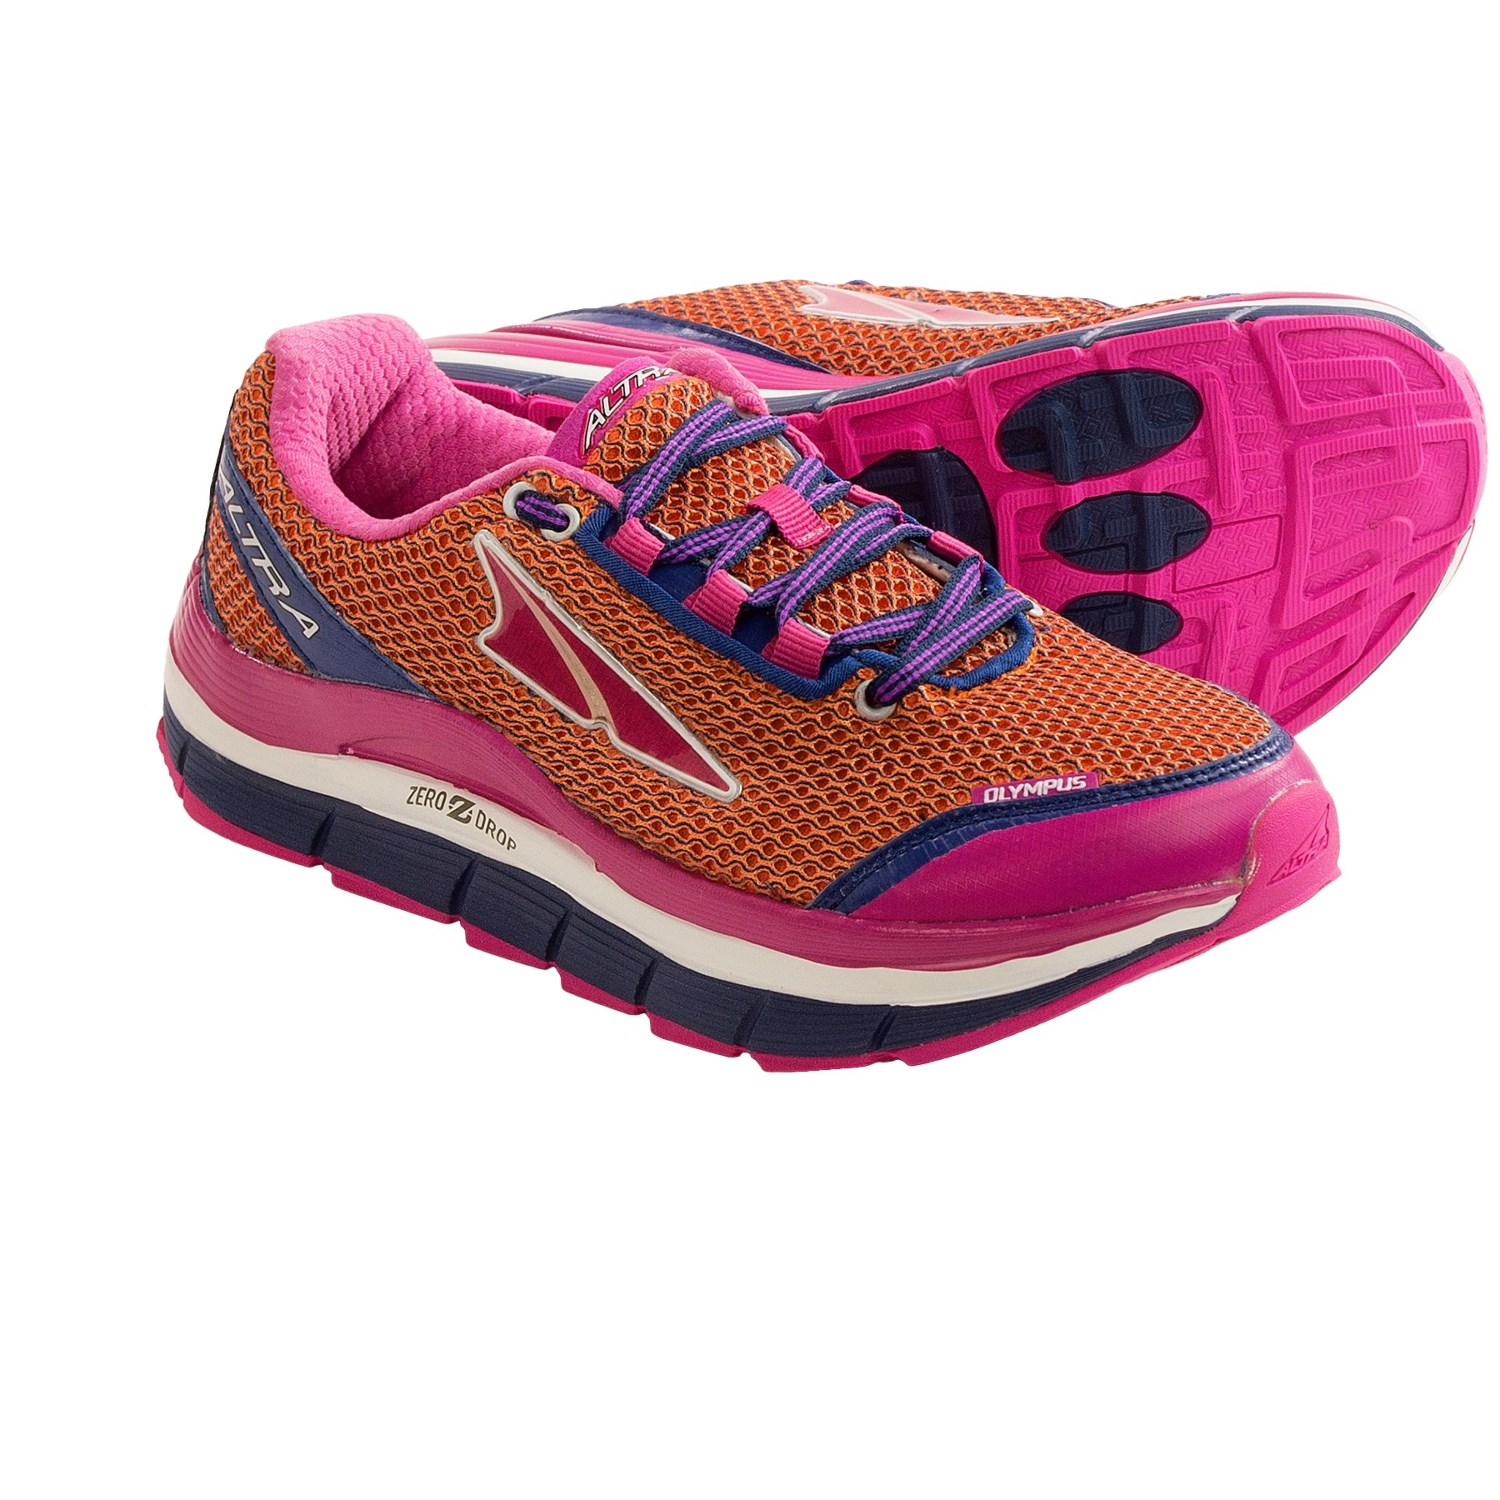 Where To Buy Altra Shoes In Australia